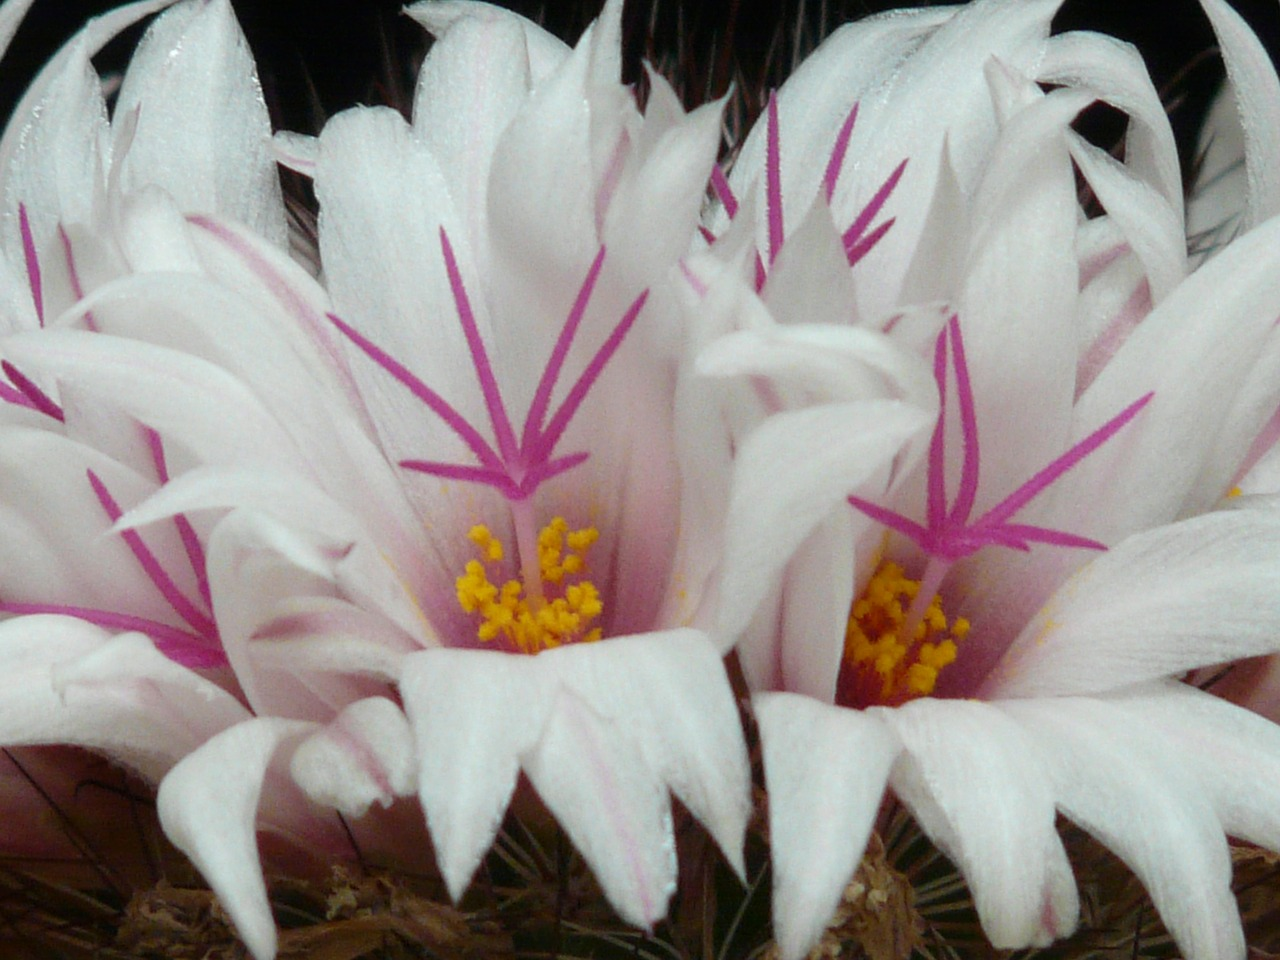 cactus white flowers free photo